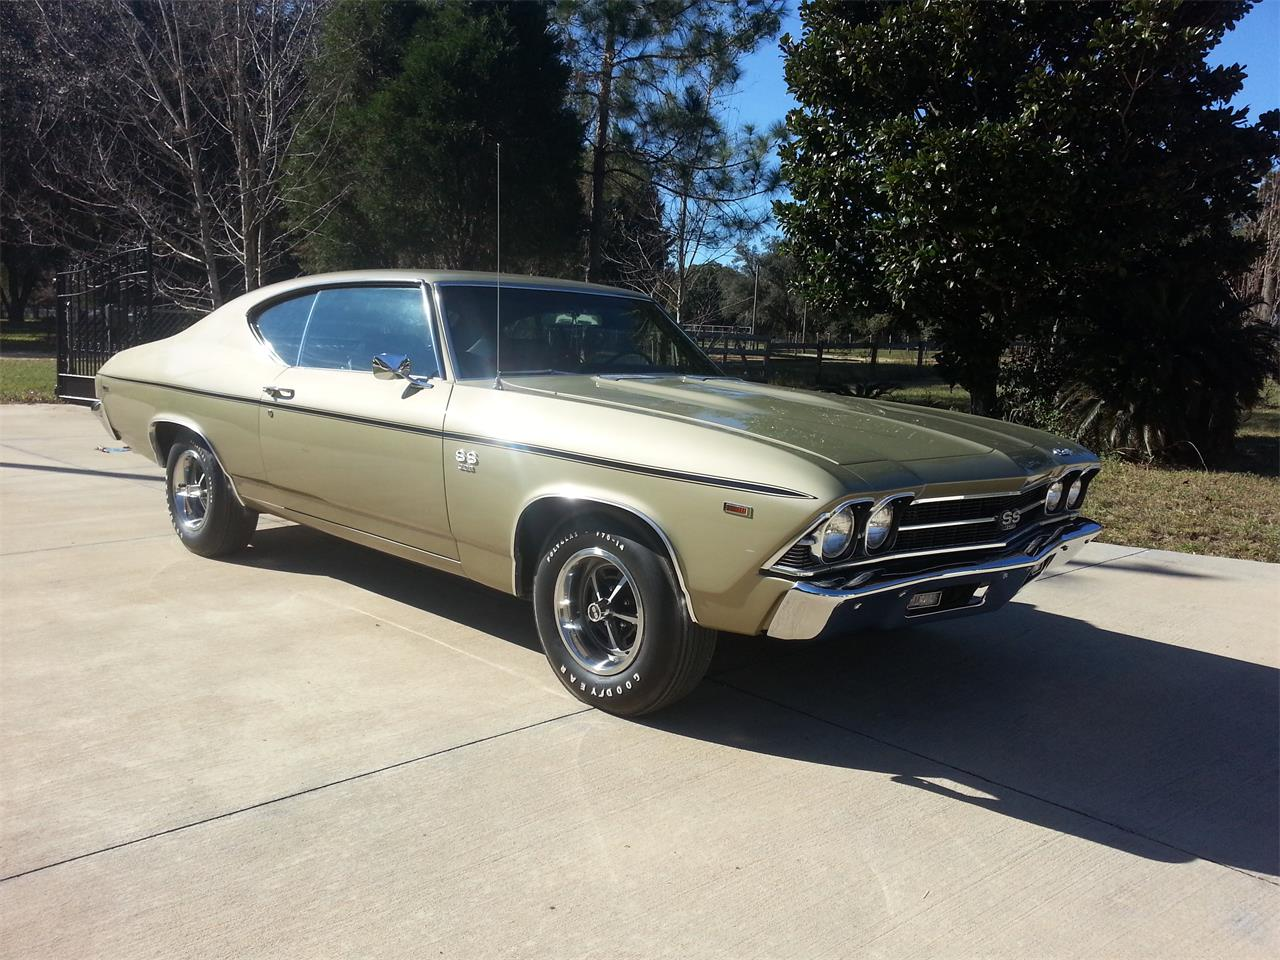 Large Picture of '69 Chevrolet Chevelle Malibu located in Florida - $42,500.00 Offered by a Private Seller - N21B